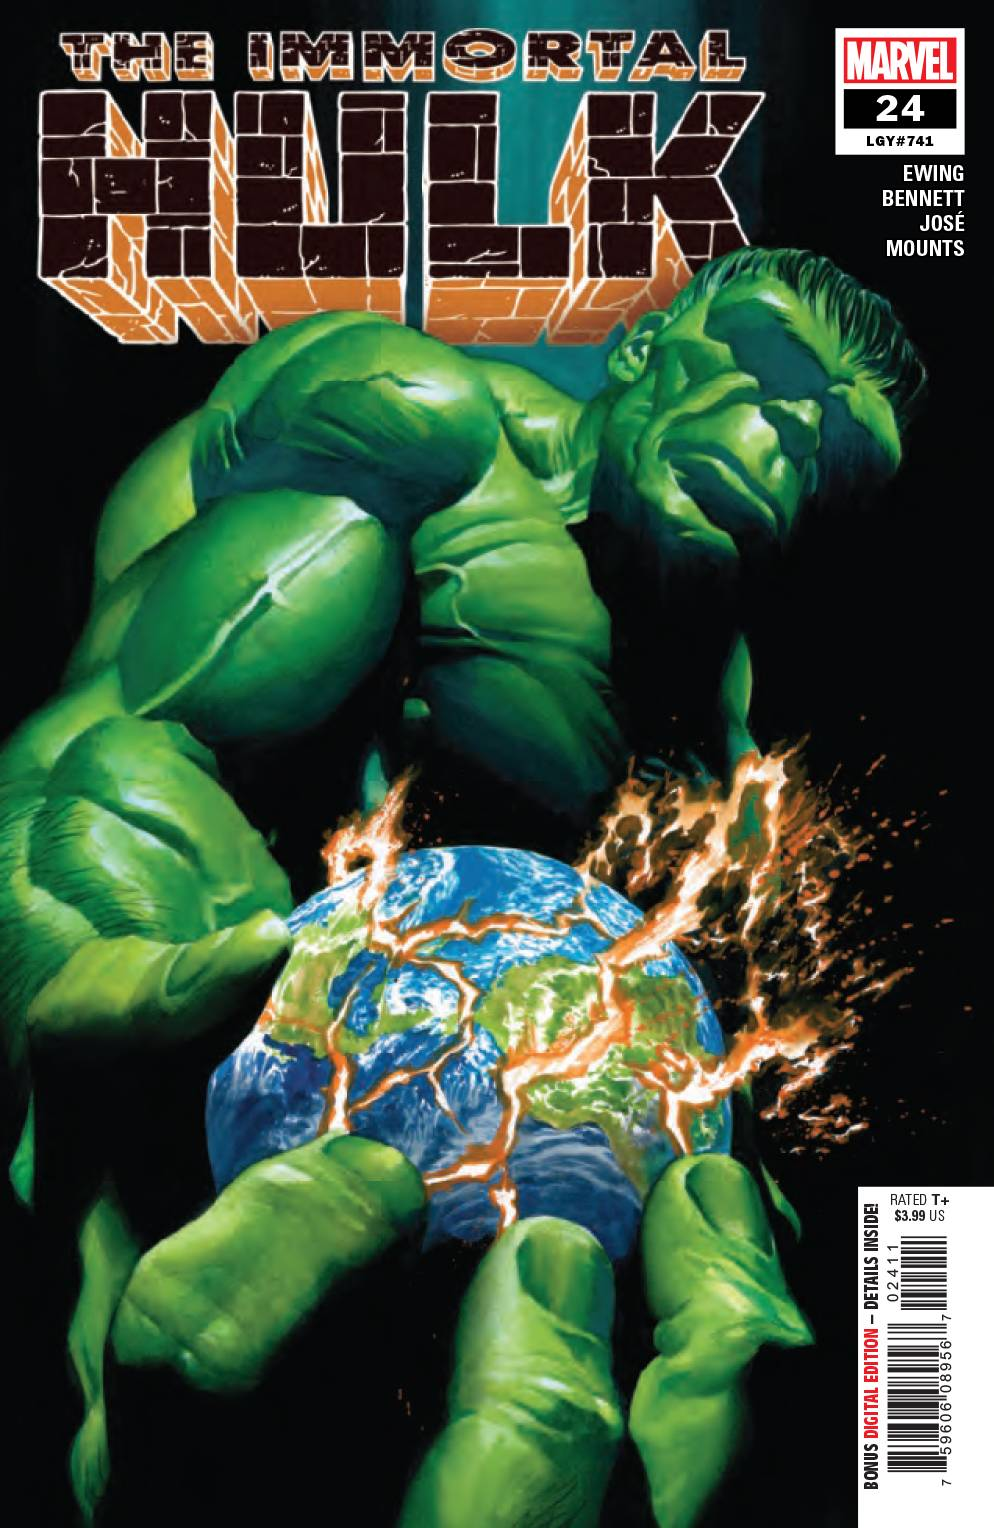 IMMORTAL HULK #24